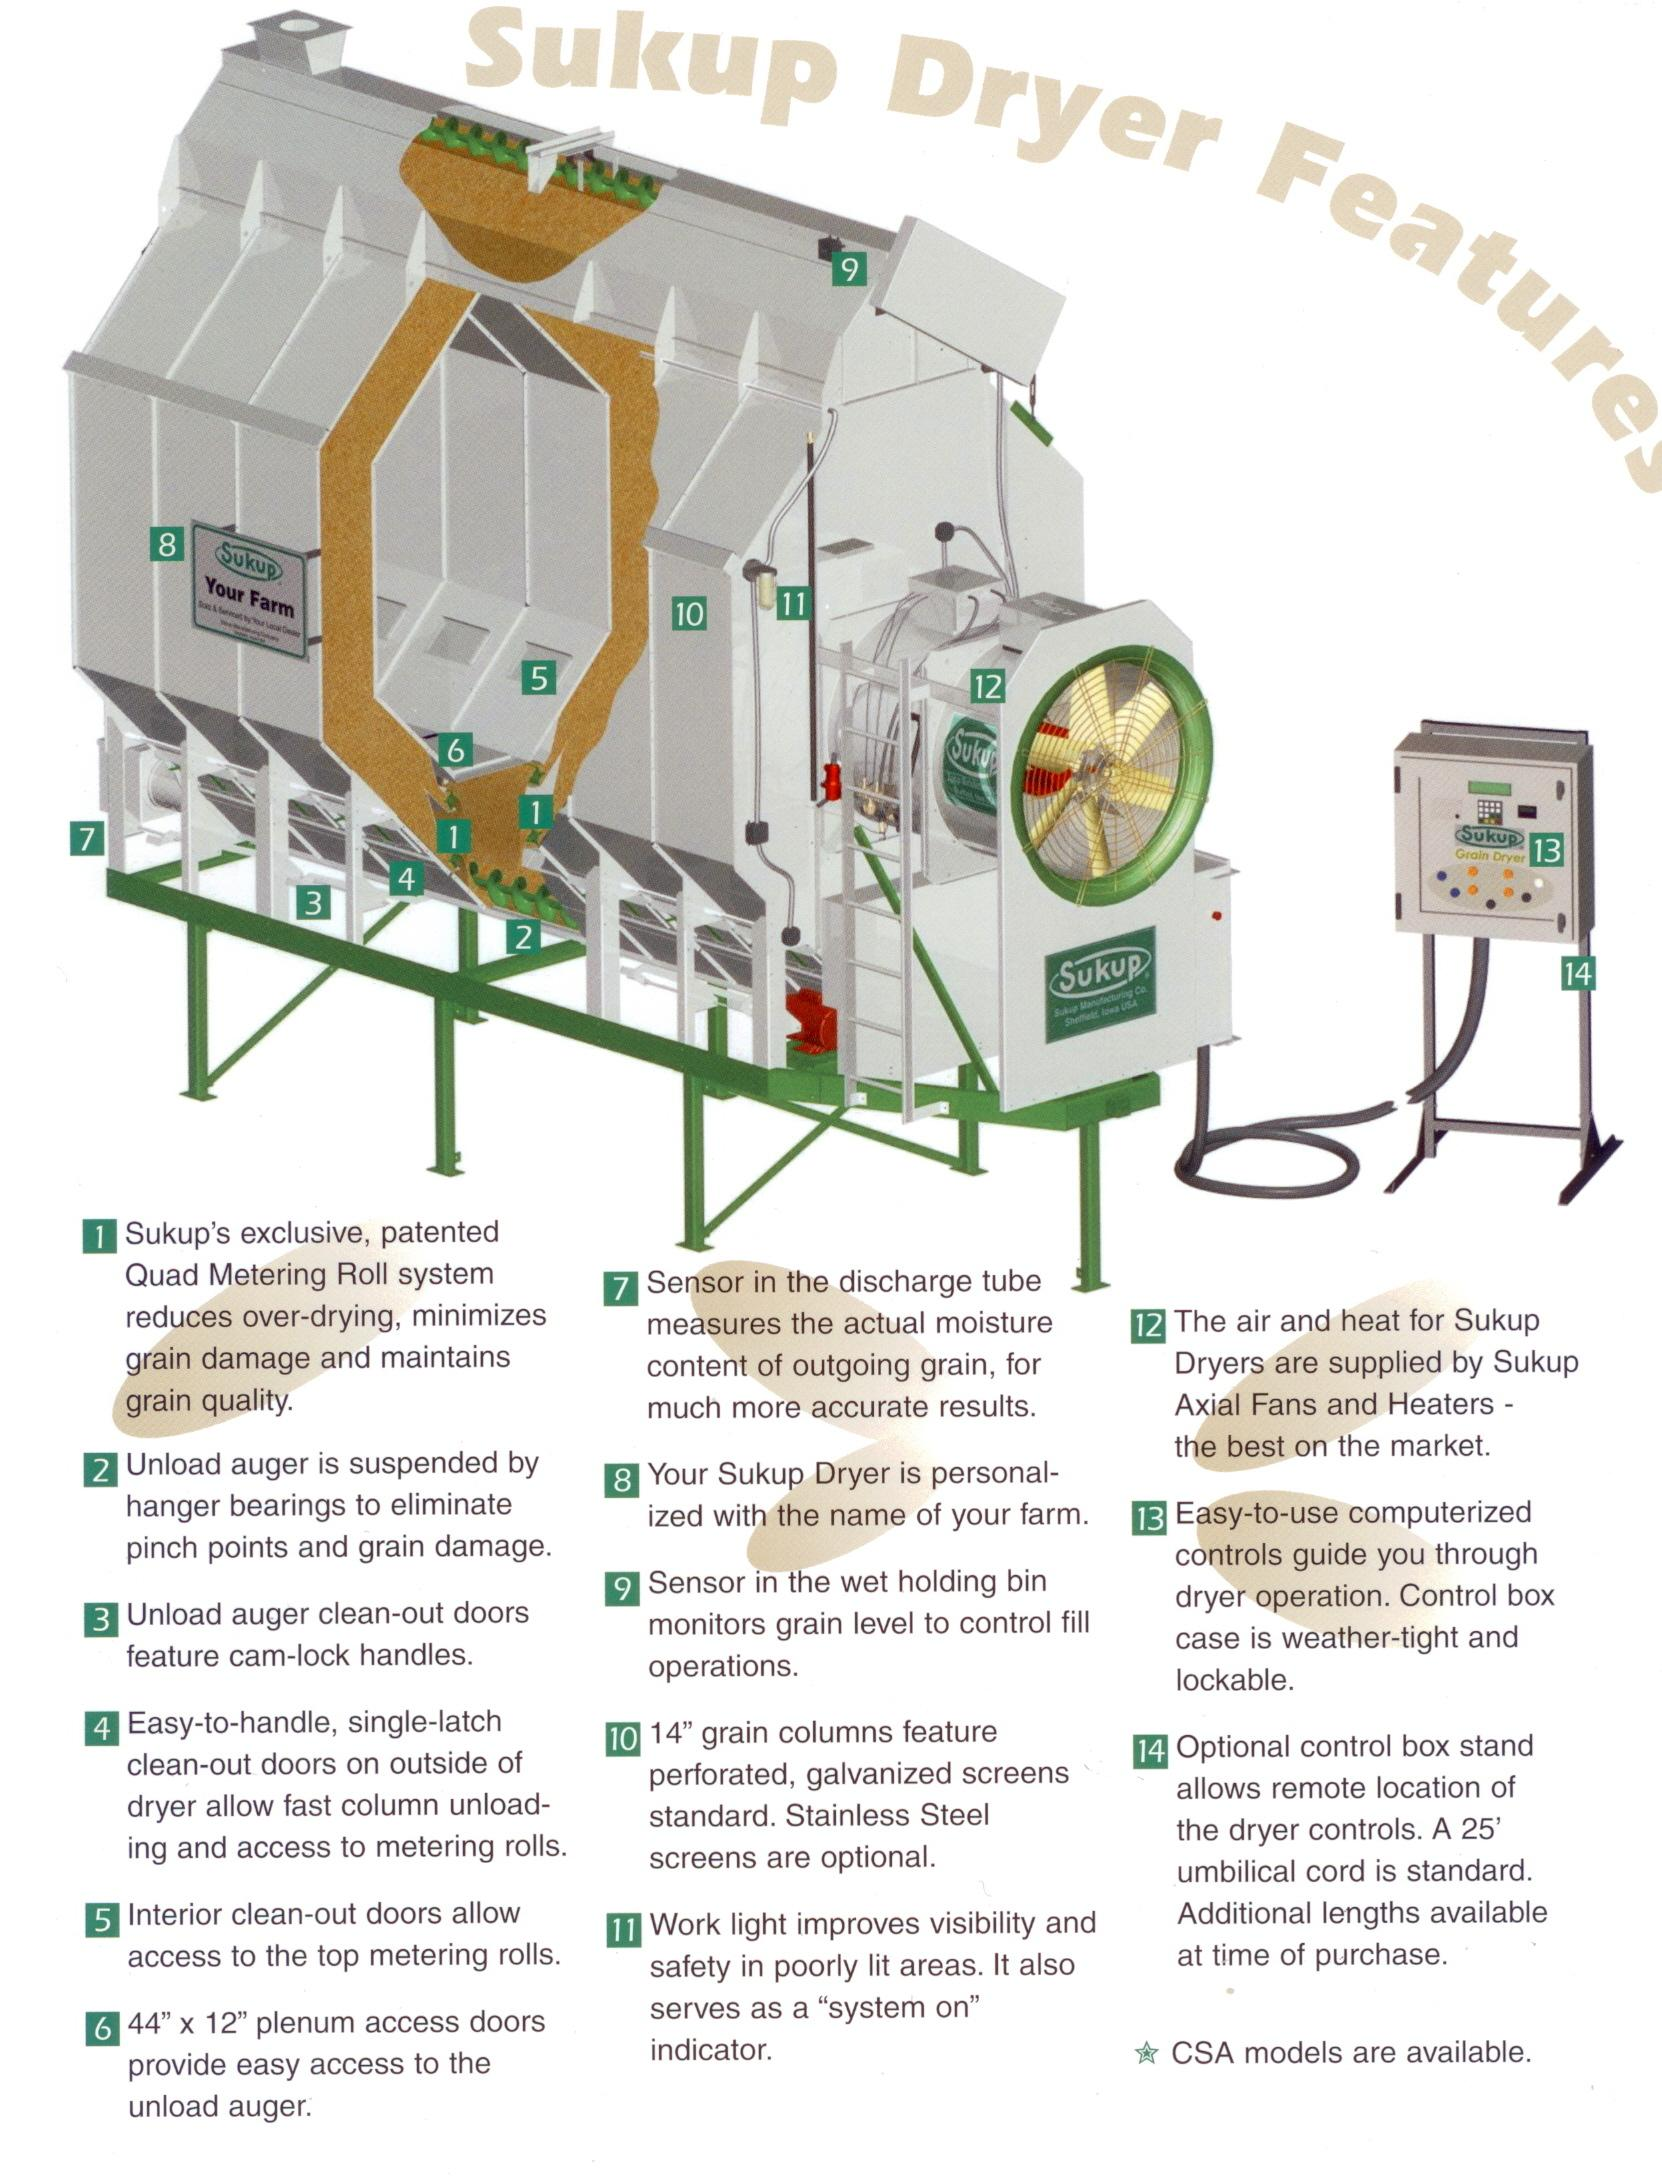 Cctv Schematic And Diagram Get Free Image About Wiring Work Light Wellbore